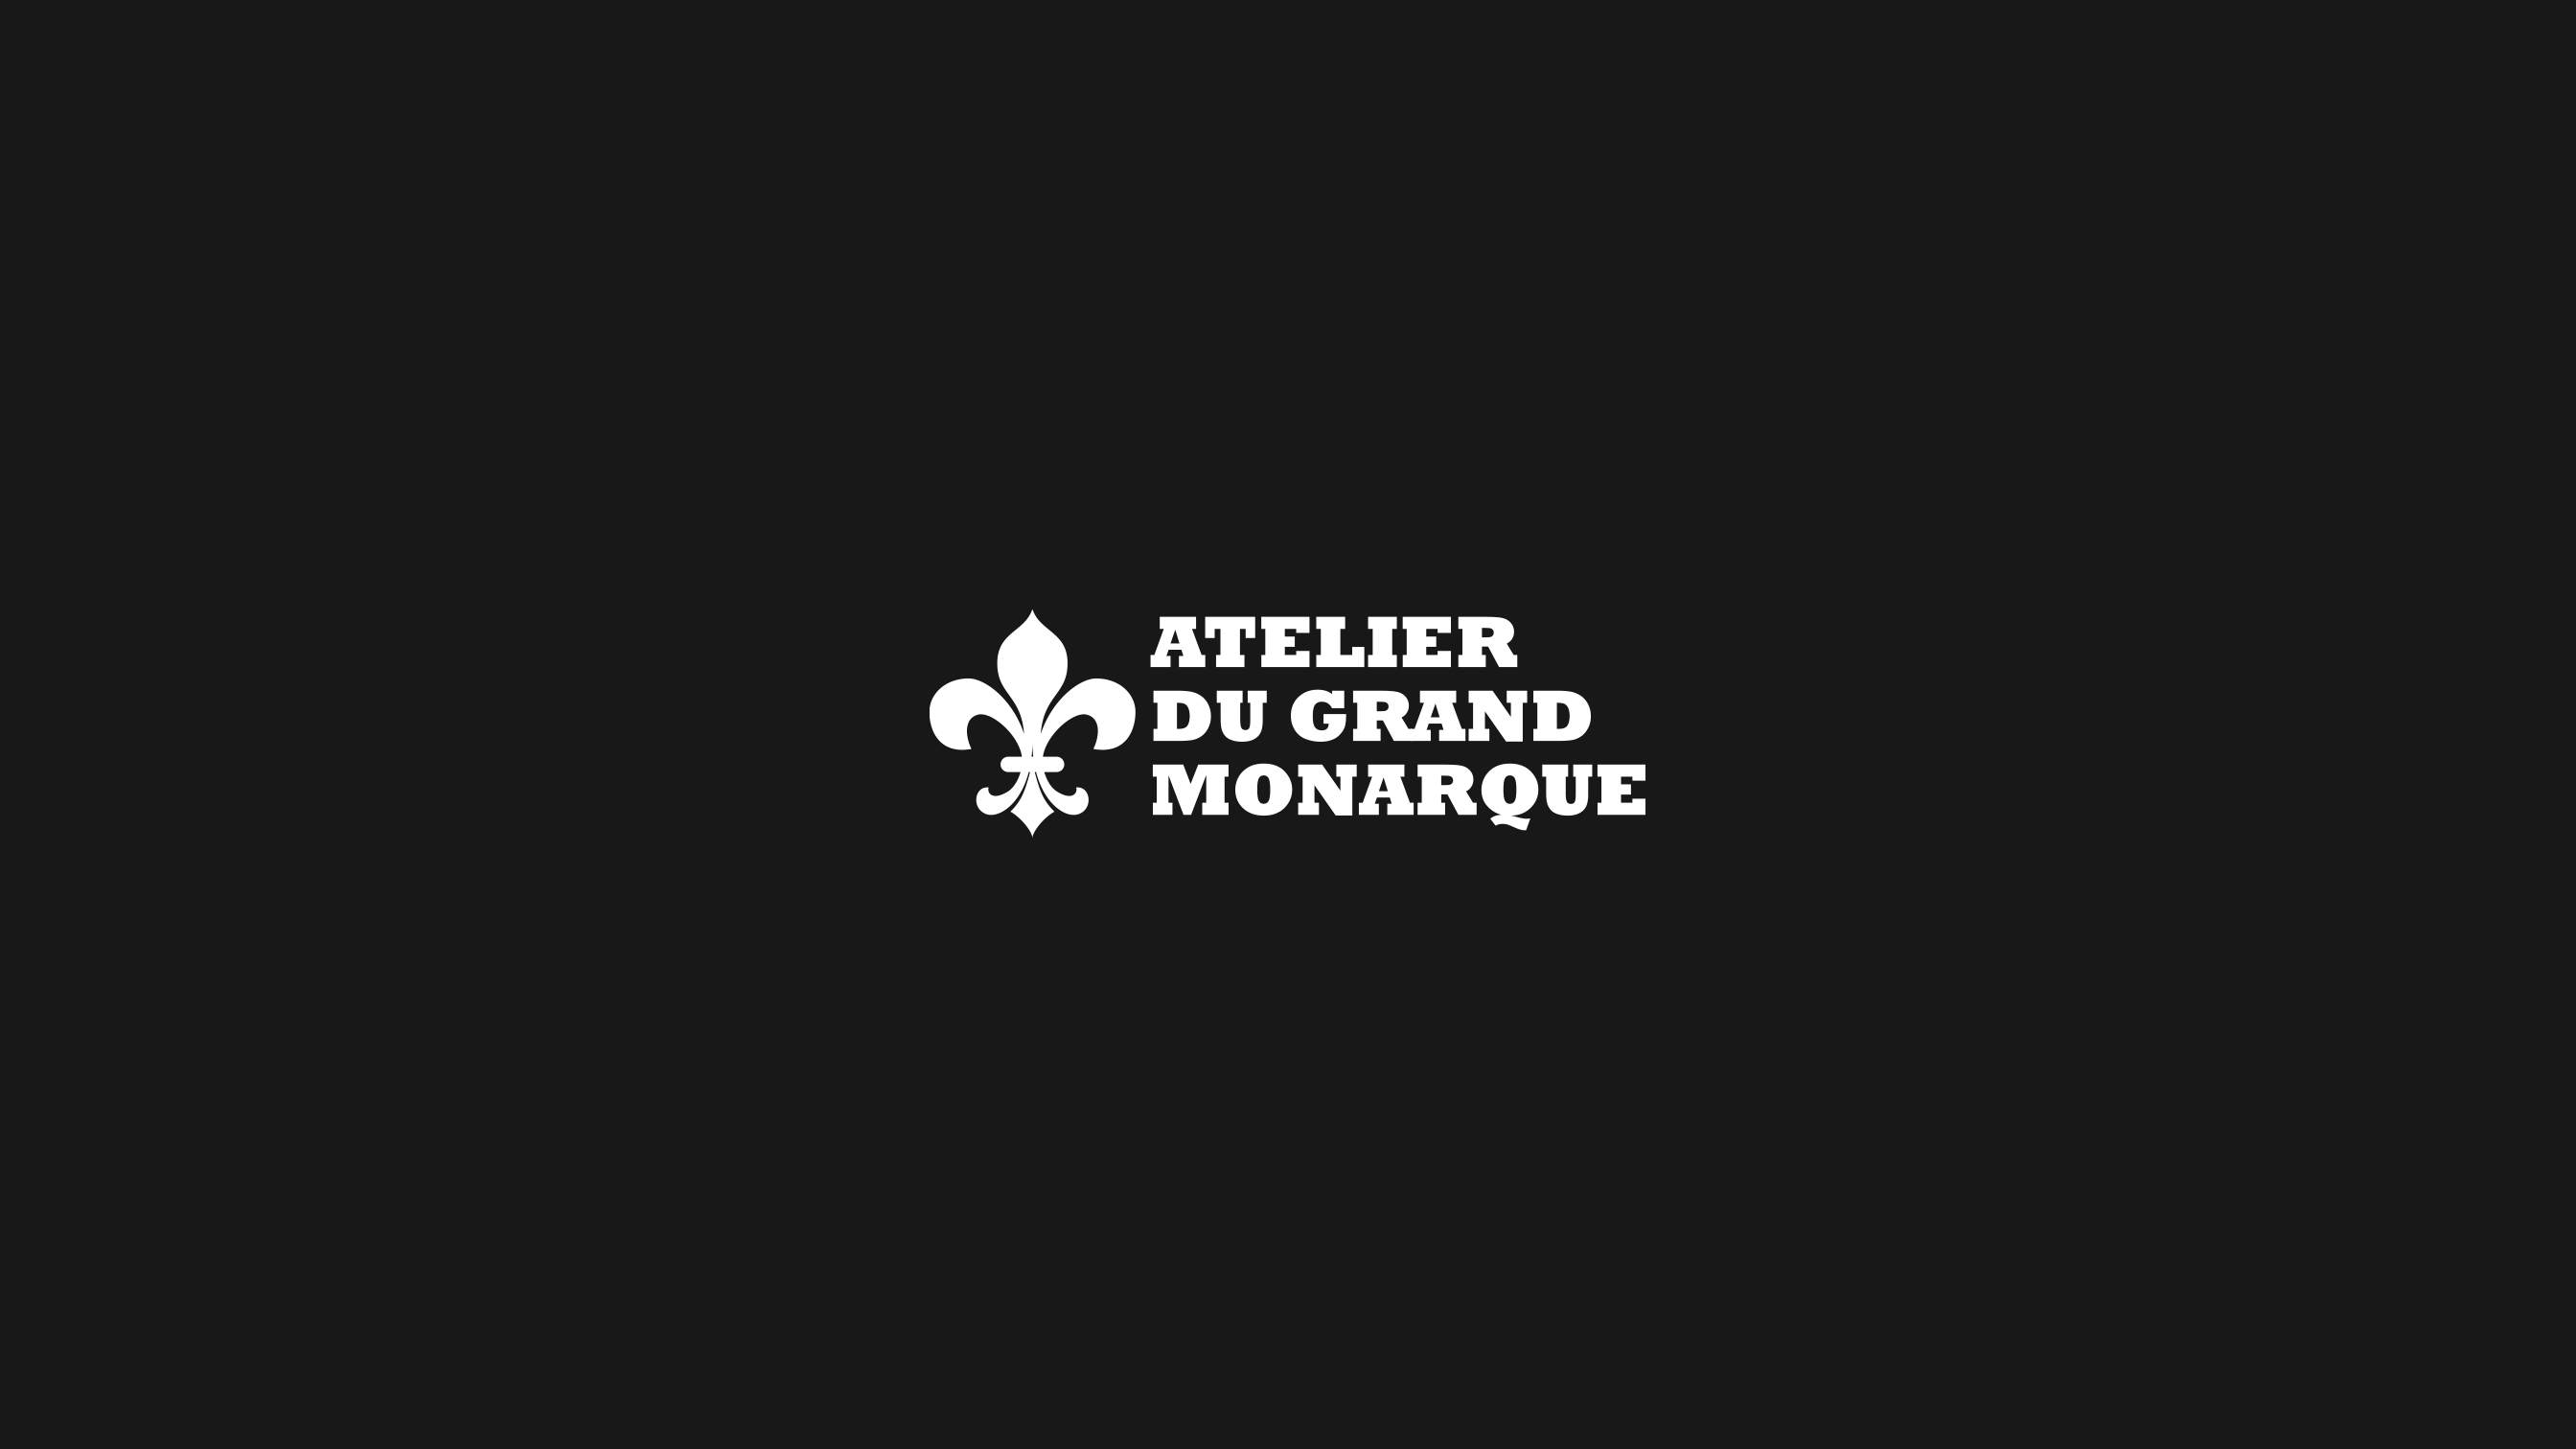 showcase-logotype-atelier-du-grand-monarque